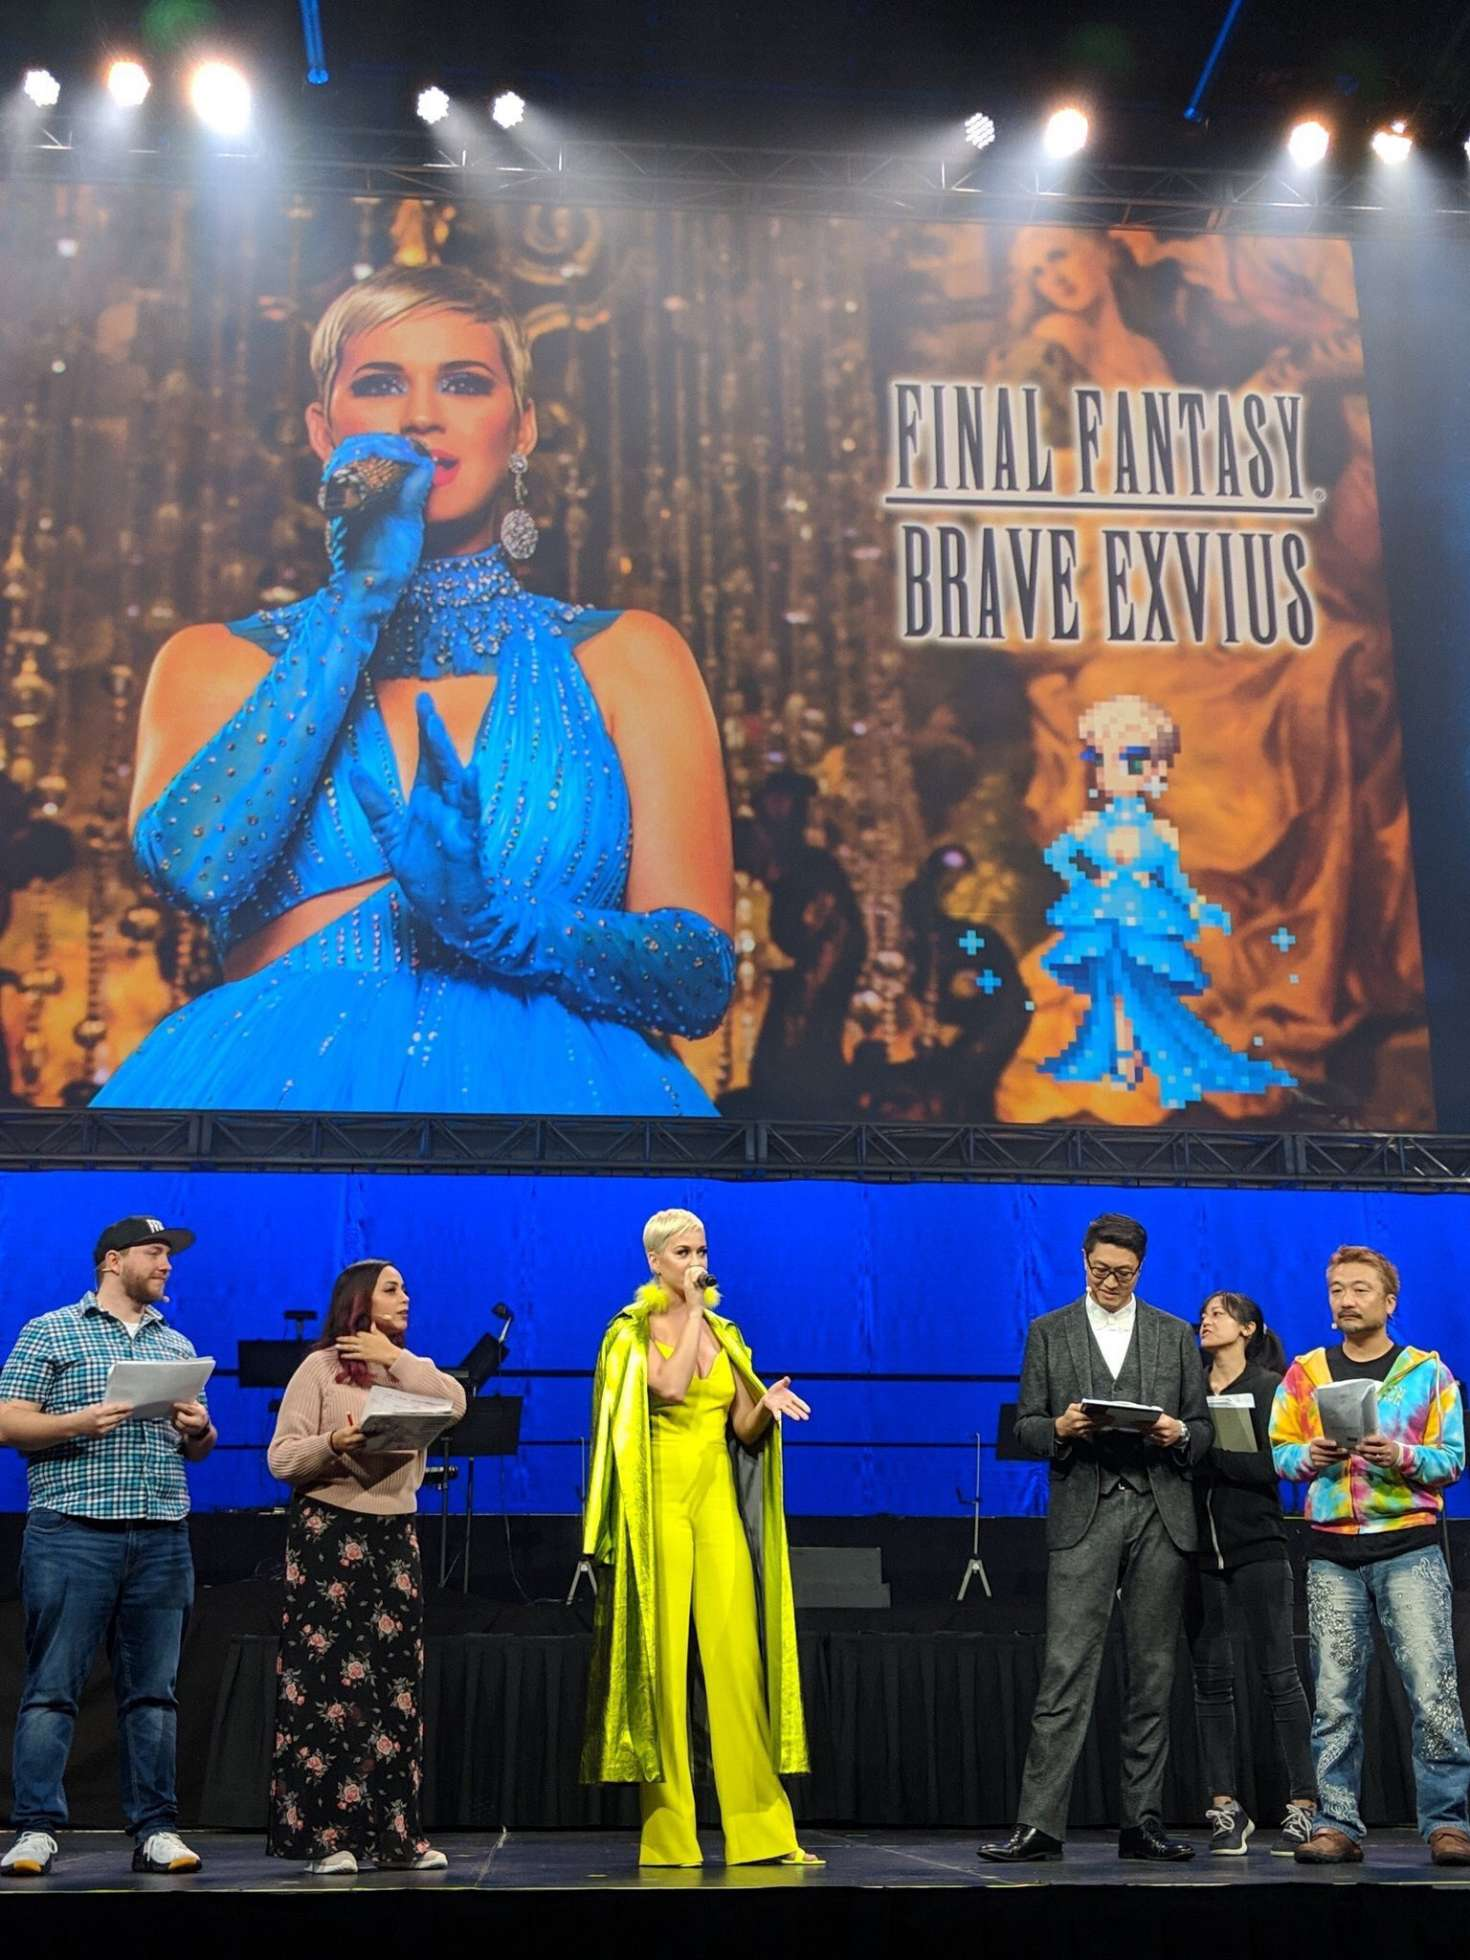 Katy Perry 2018 : Katy Perry at FFBE Fan Festa 2018 -01